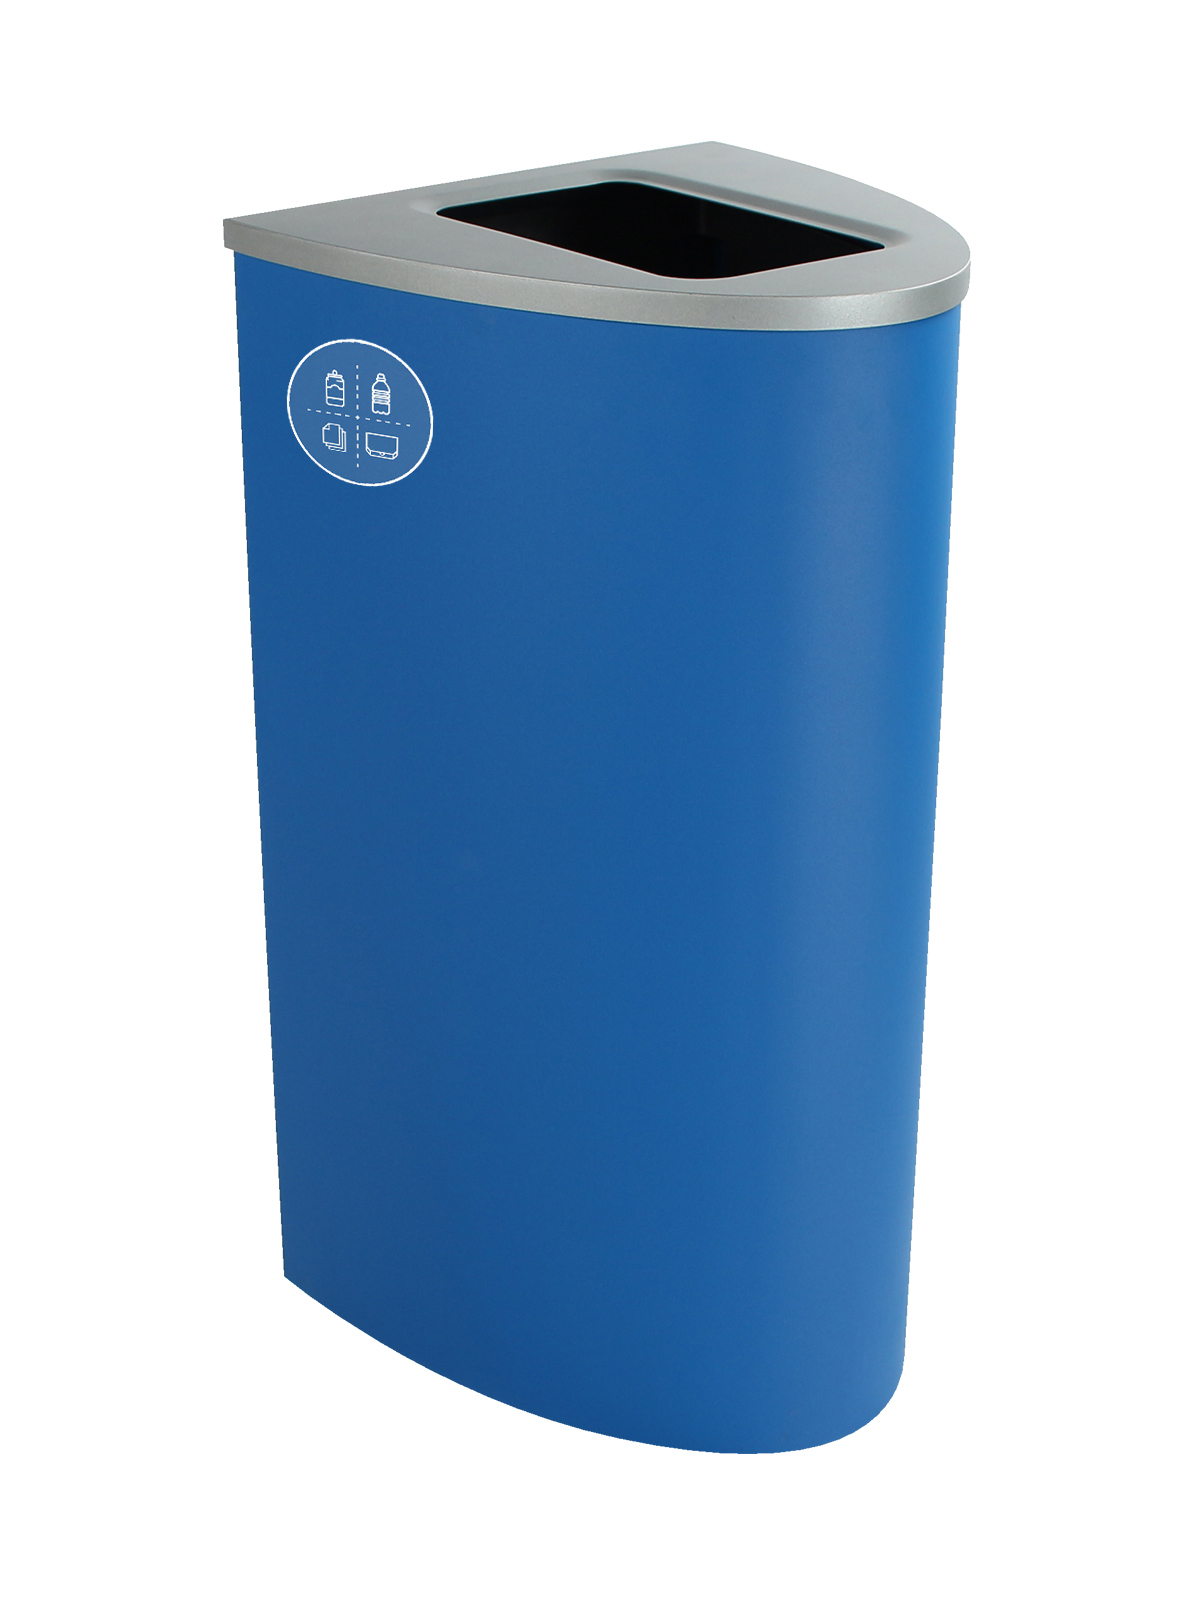 SPECTRUM - Single - Ellipse - Mixed Recyclables - Full - Blue